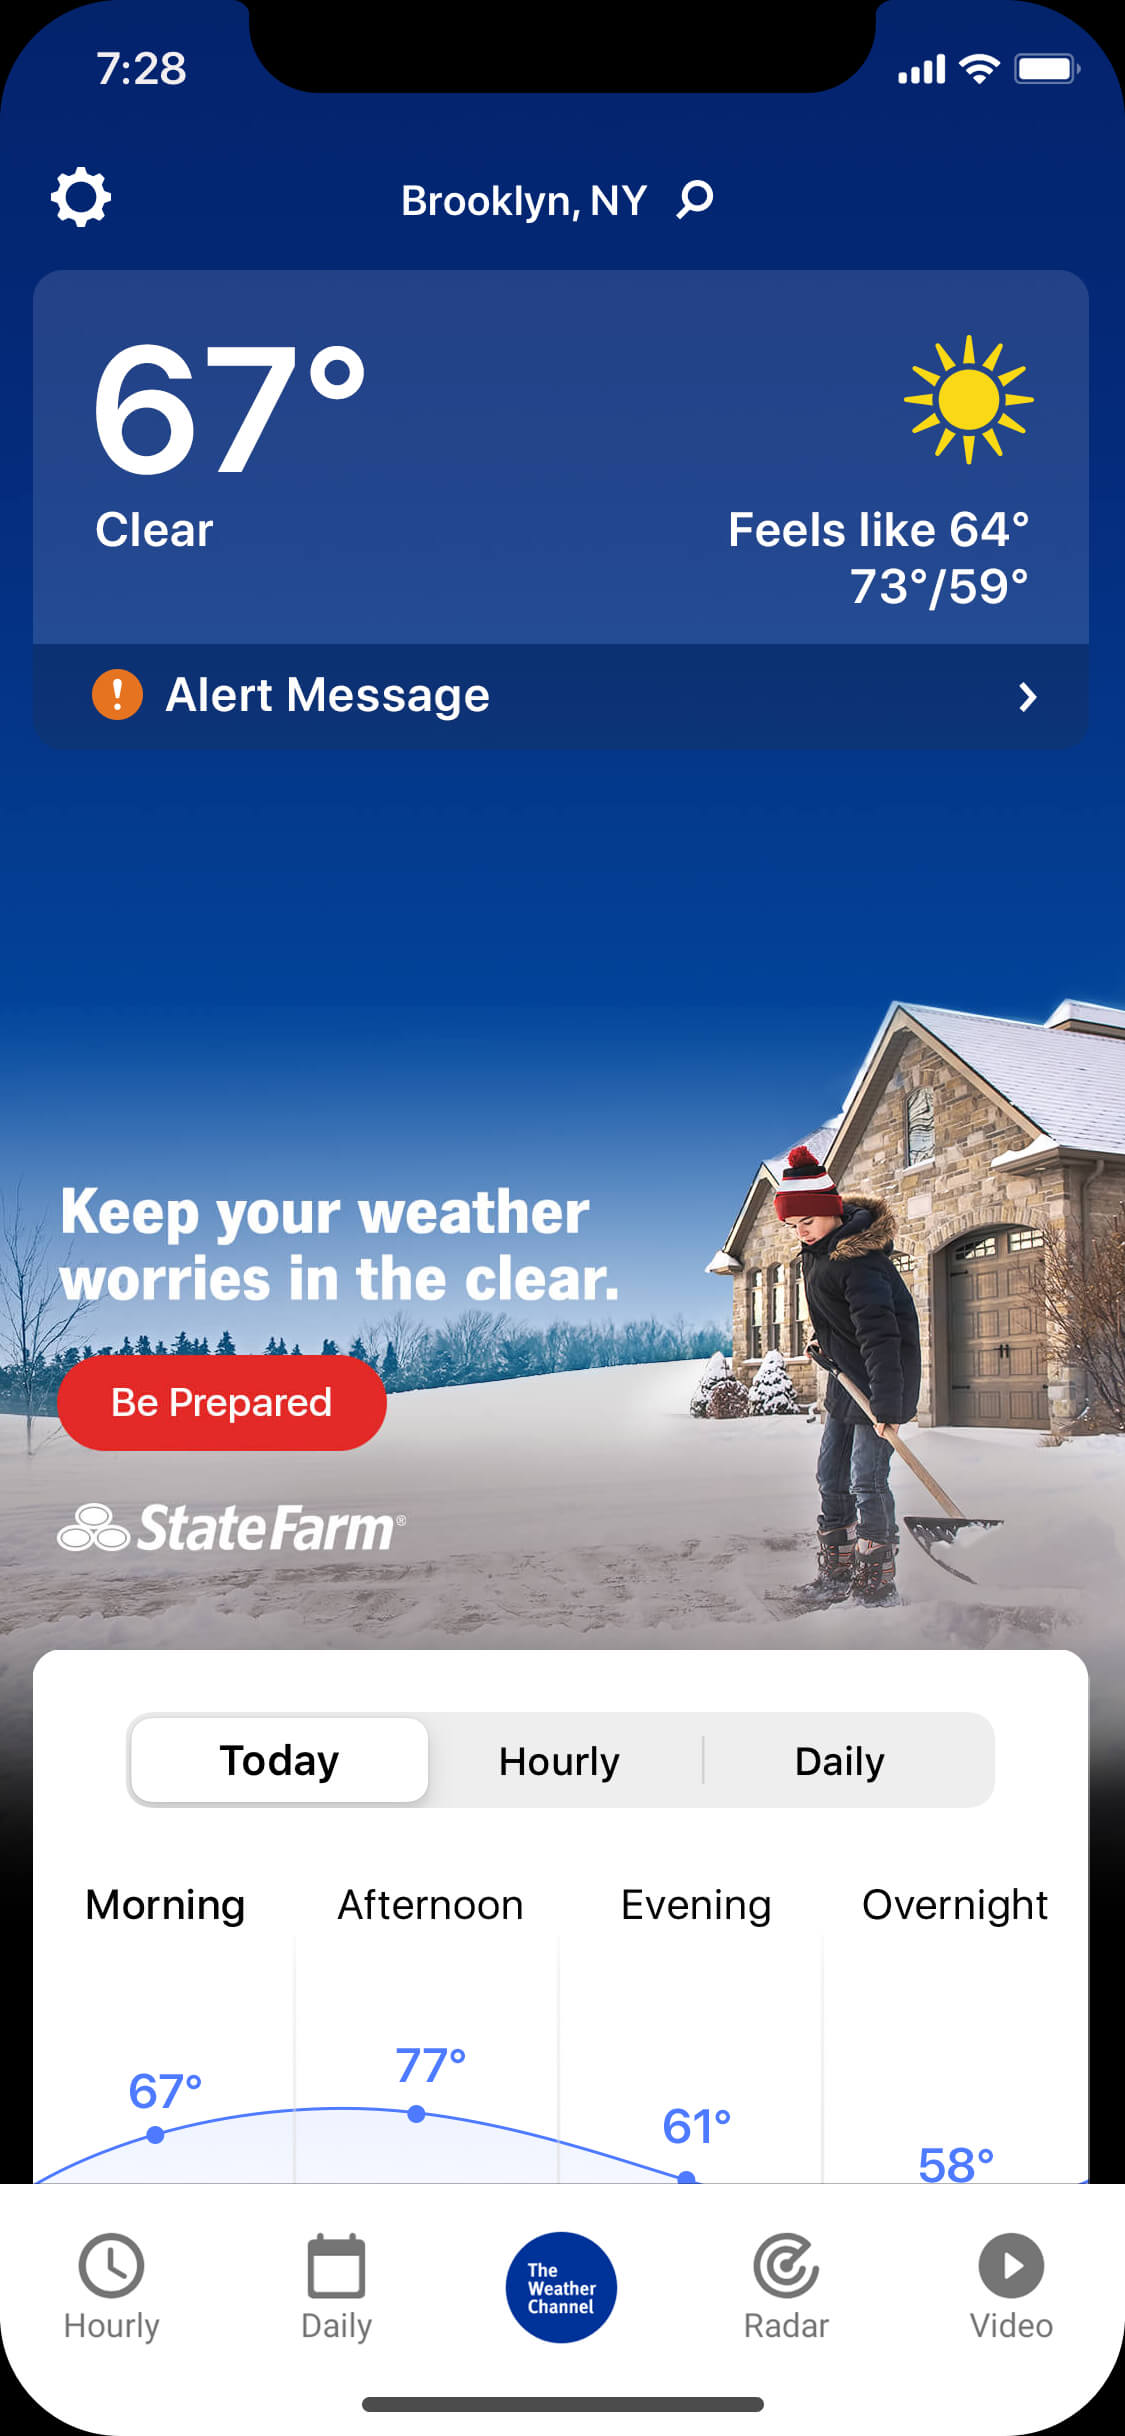 State Farm_clear_day